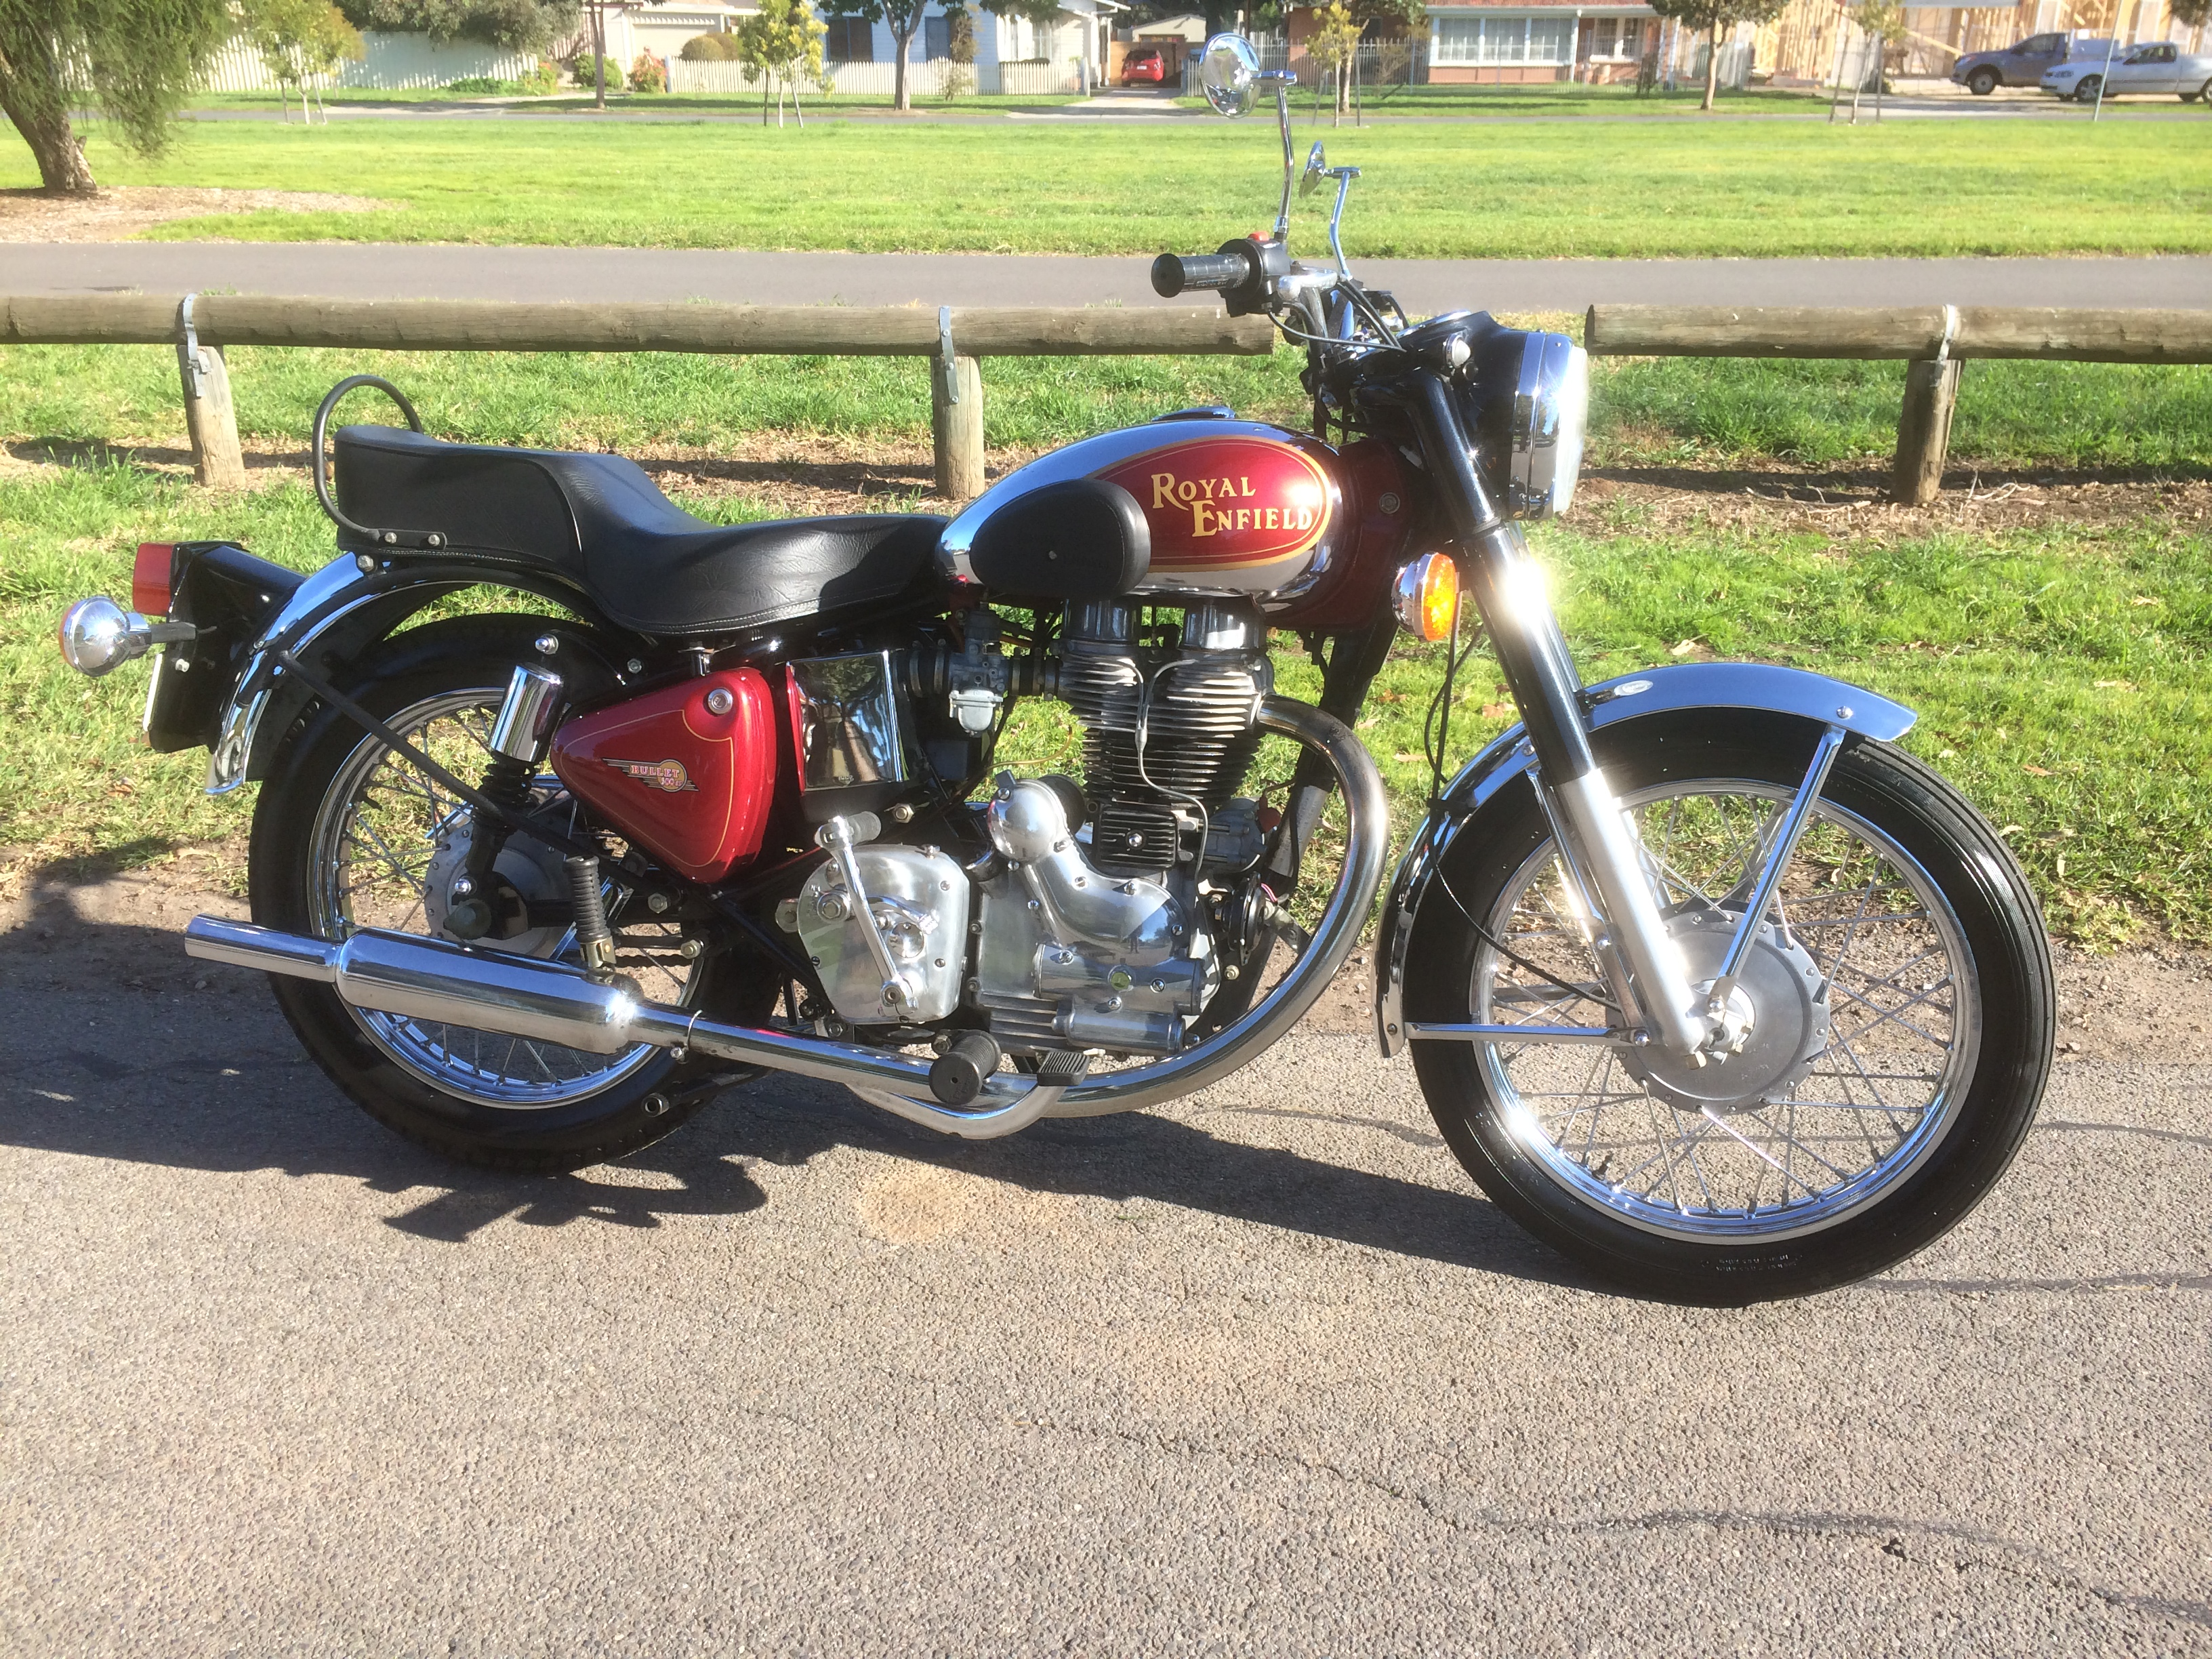 Royal Enfield Bullet 500 ES Deluxe 2005 images #123404